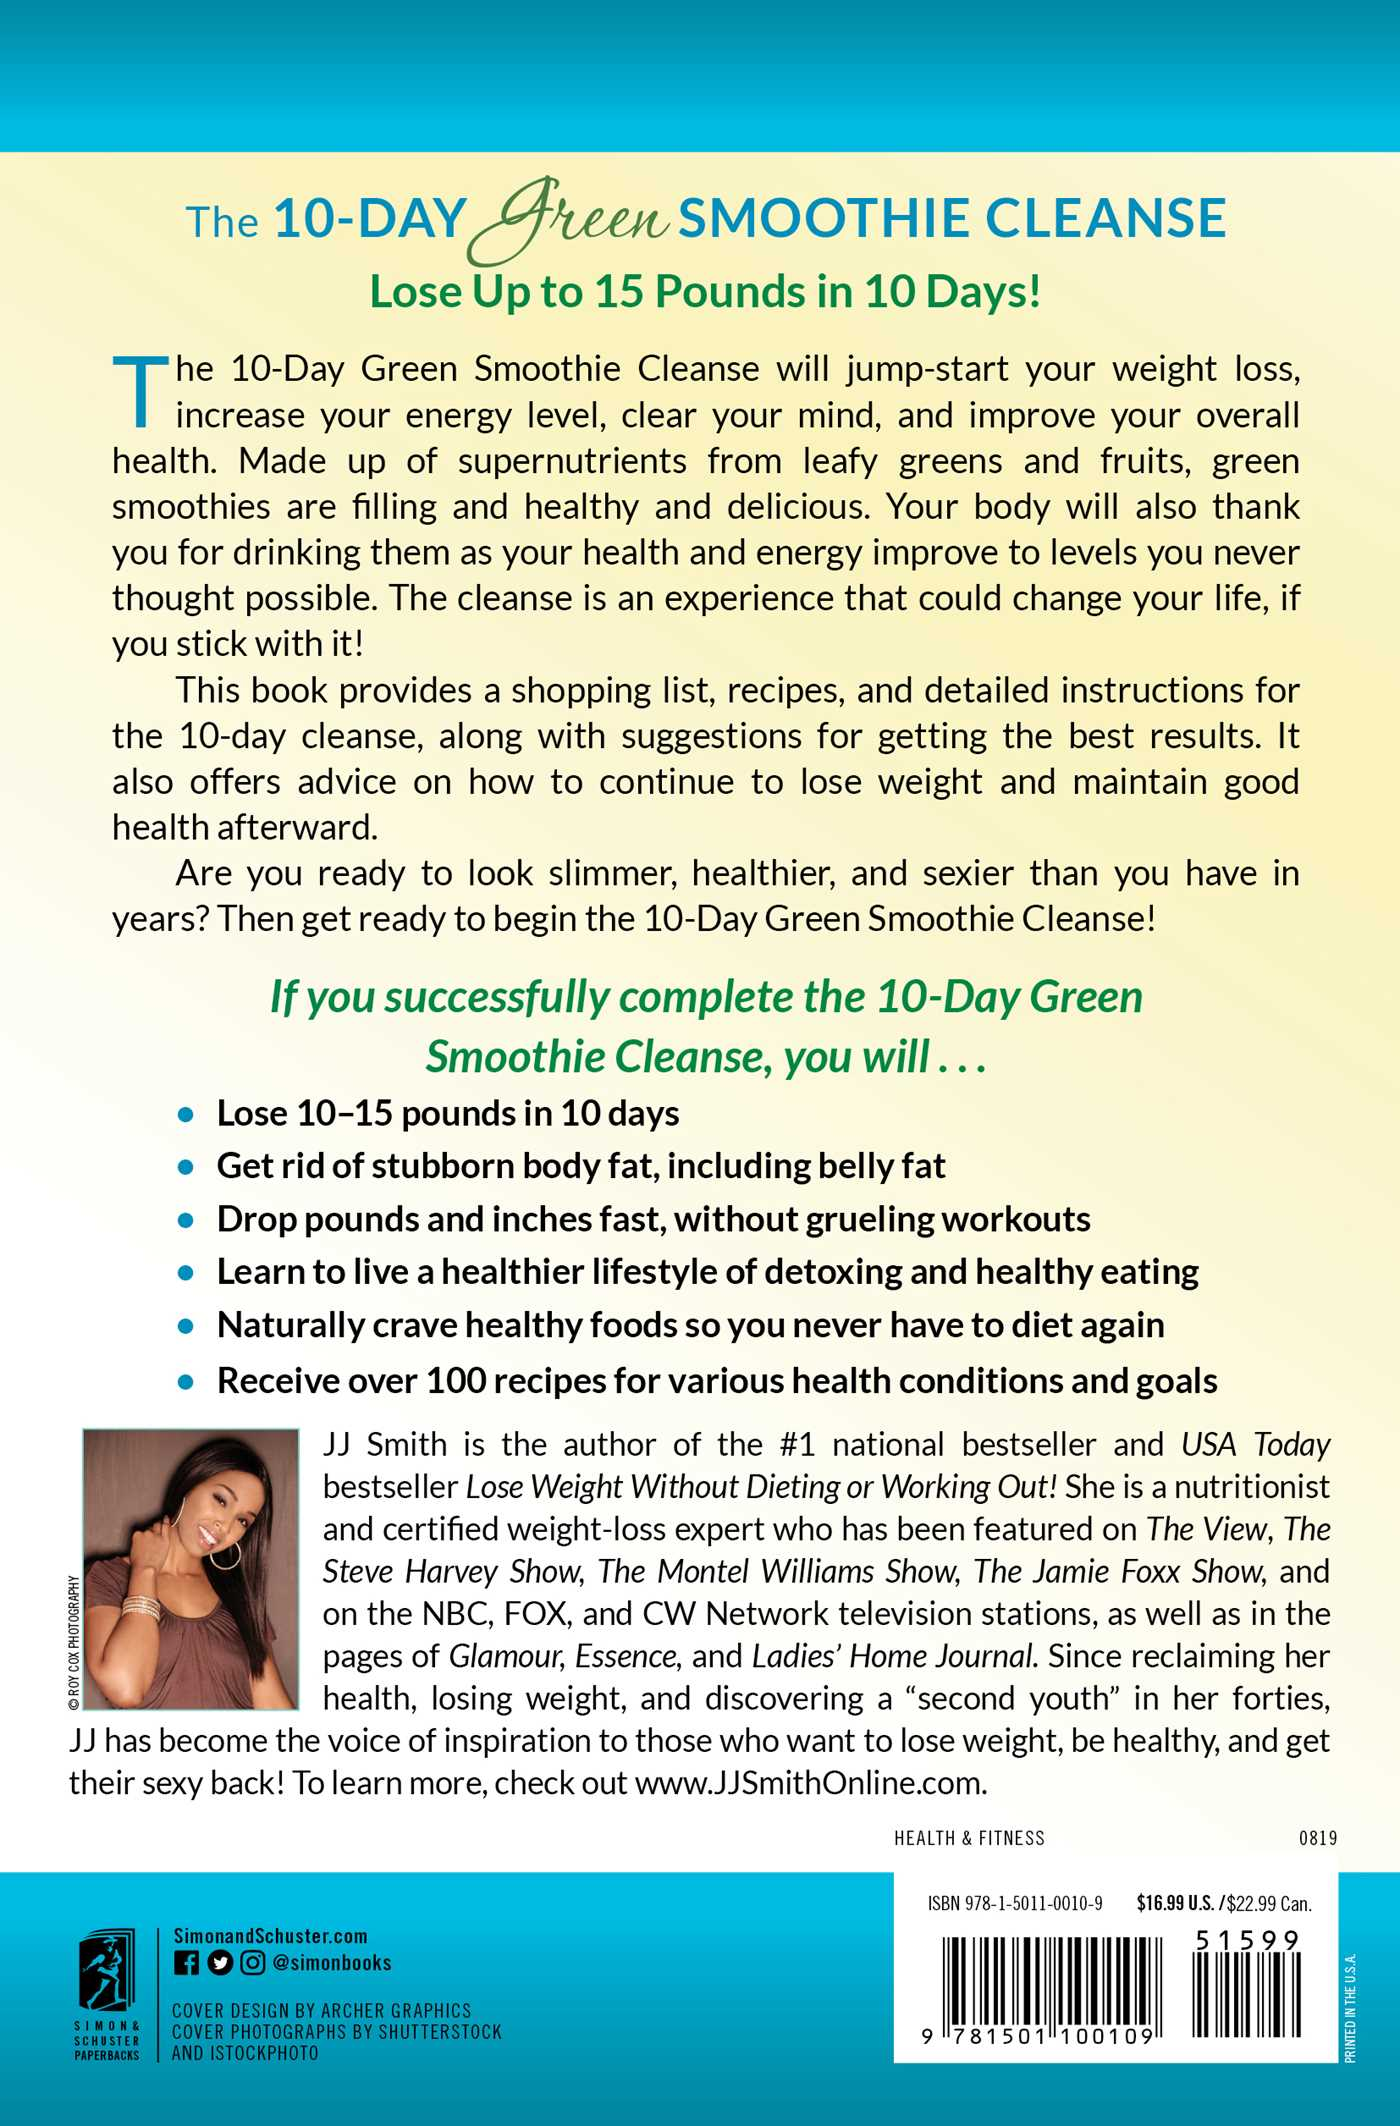 ... 10 day green smoothie cleanse 9781501100109 hr back